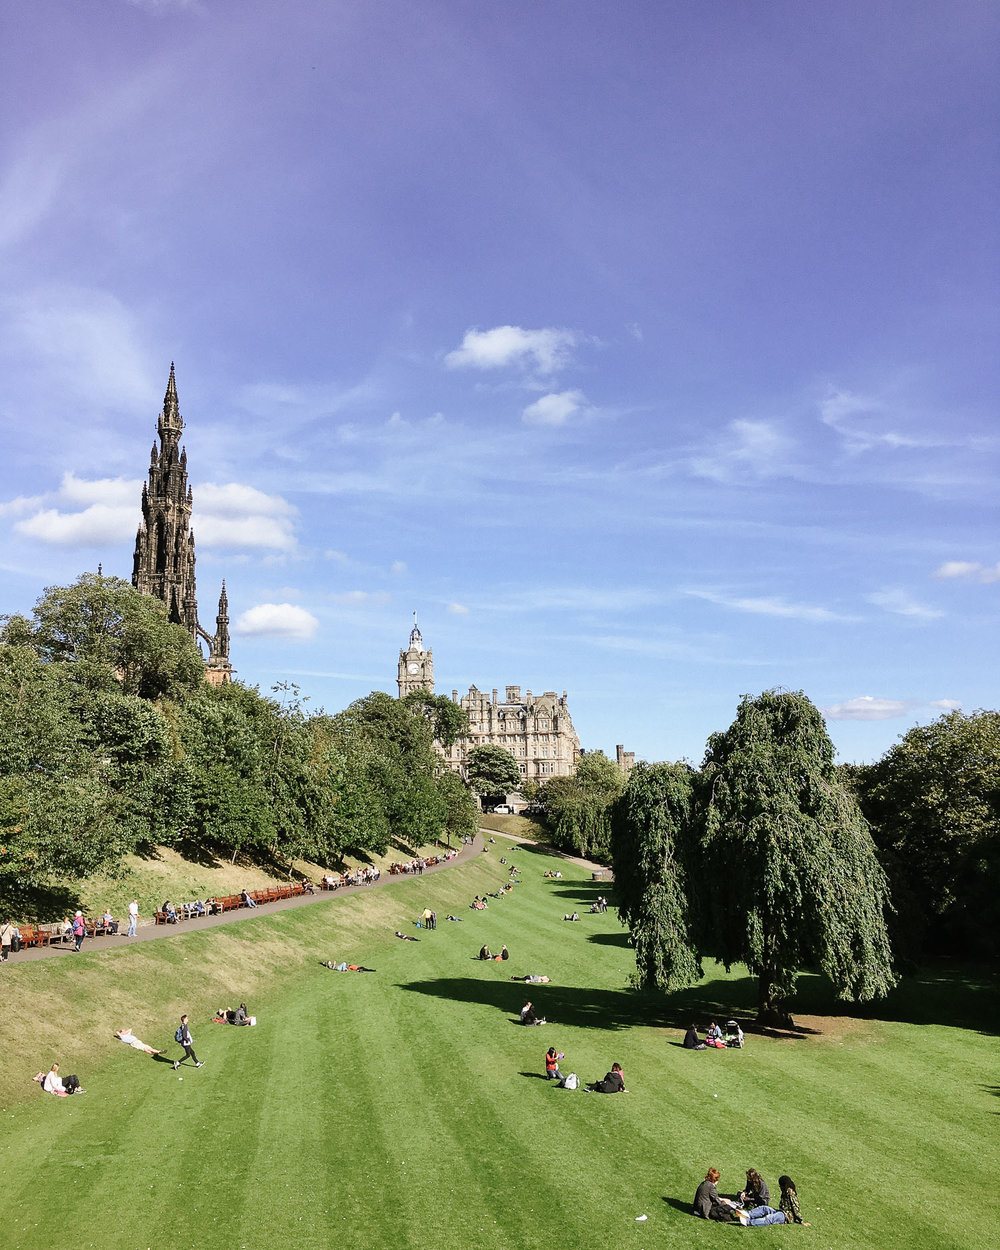 Princes St Gardens, Edinburgh, on a sunny day